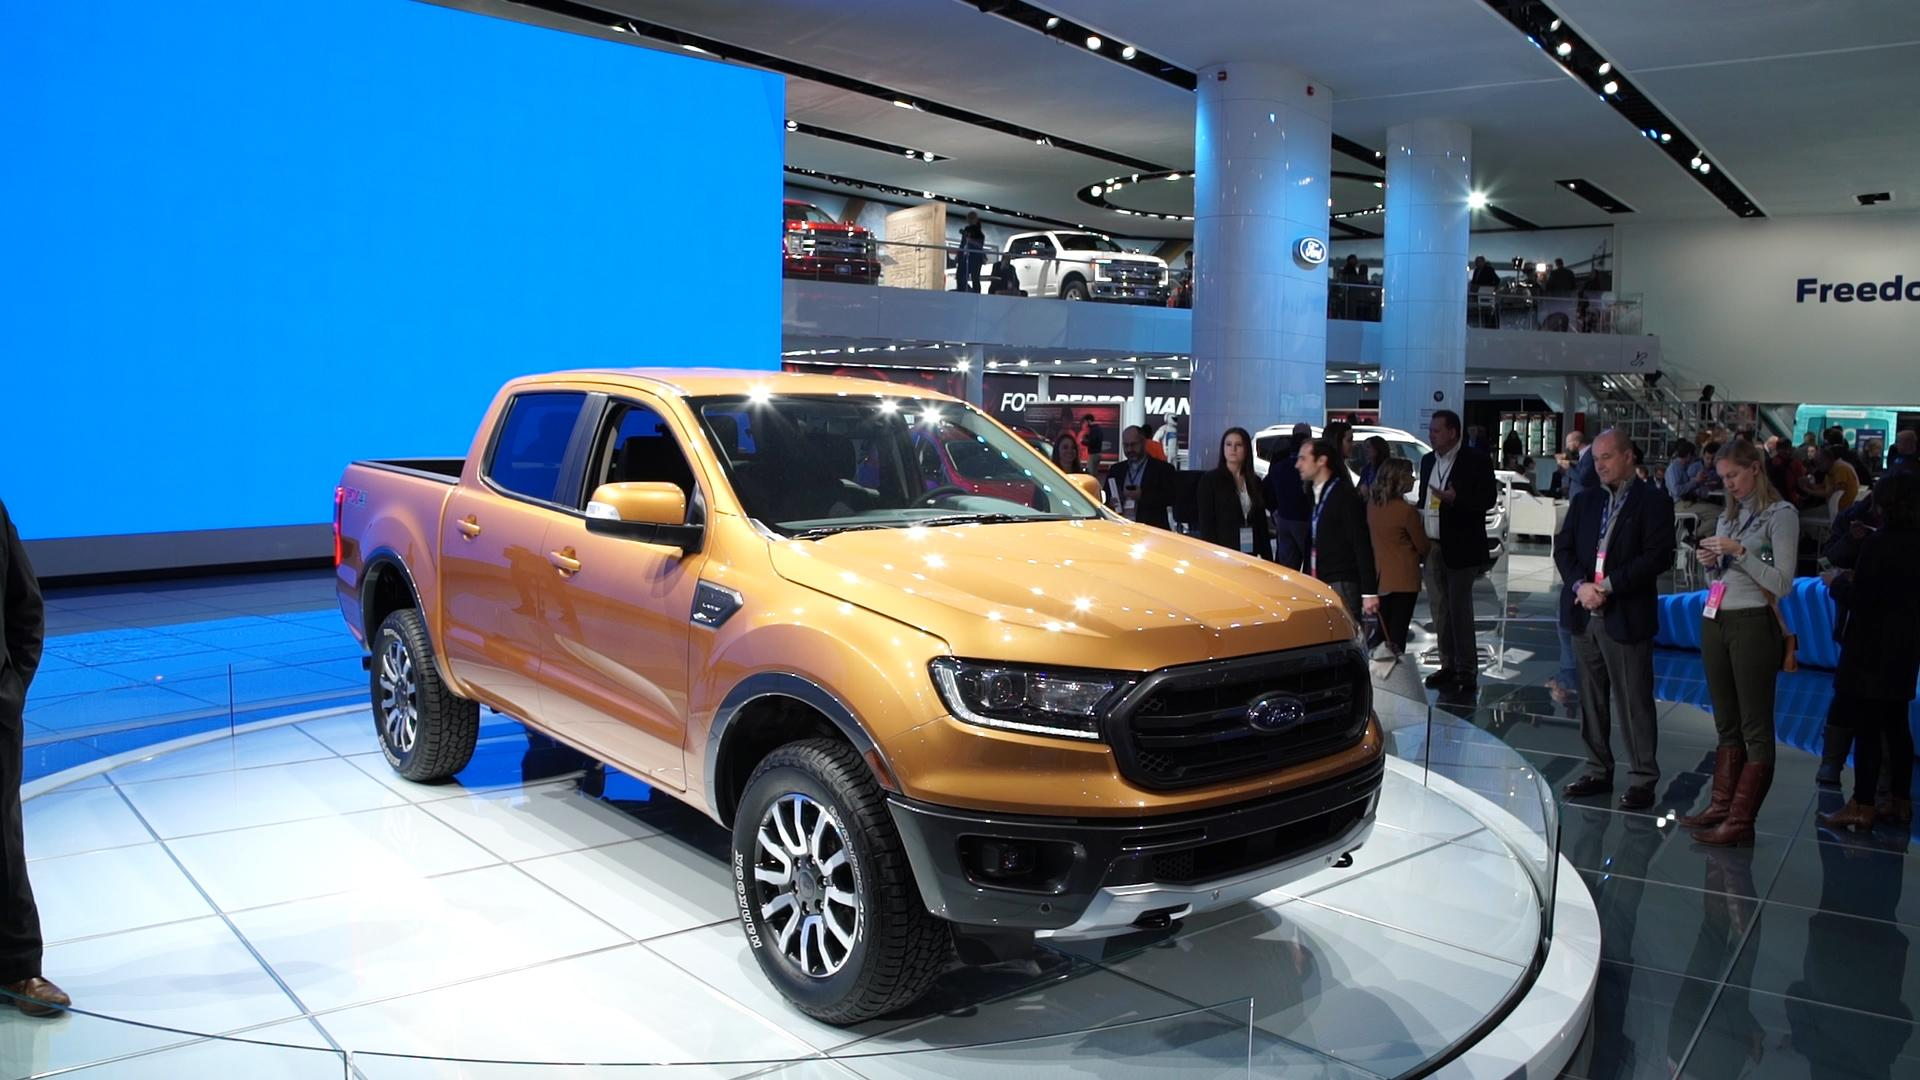 Ford Ranger Returns For Pickup Aims To Be CommuterFriendly - Auto ford